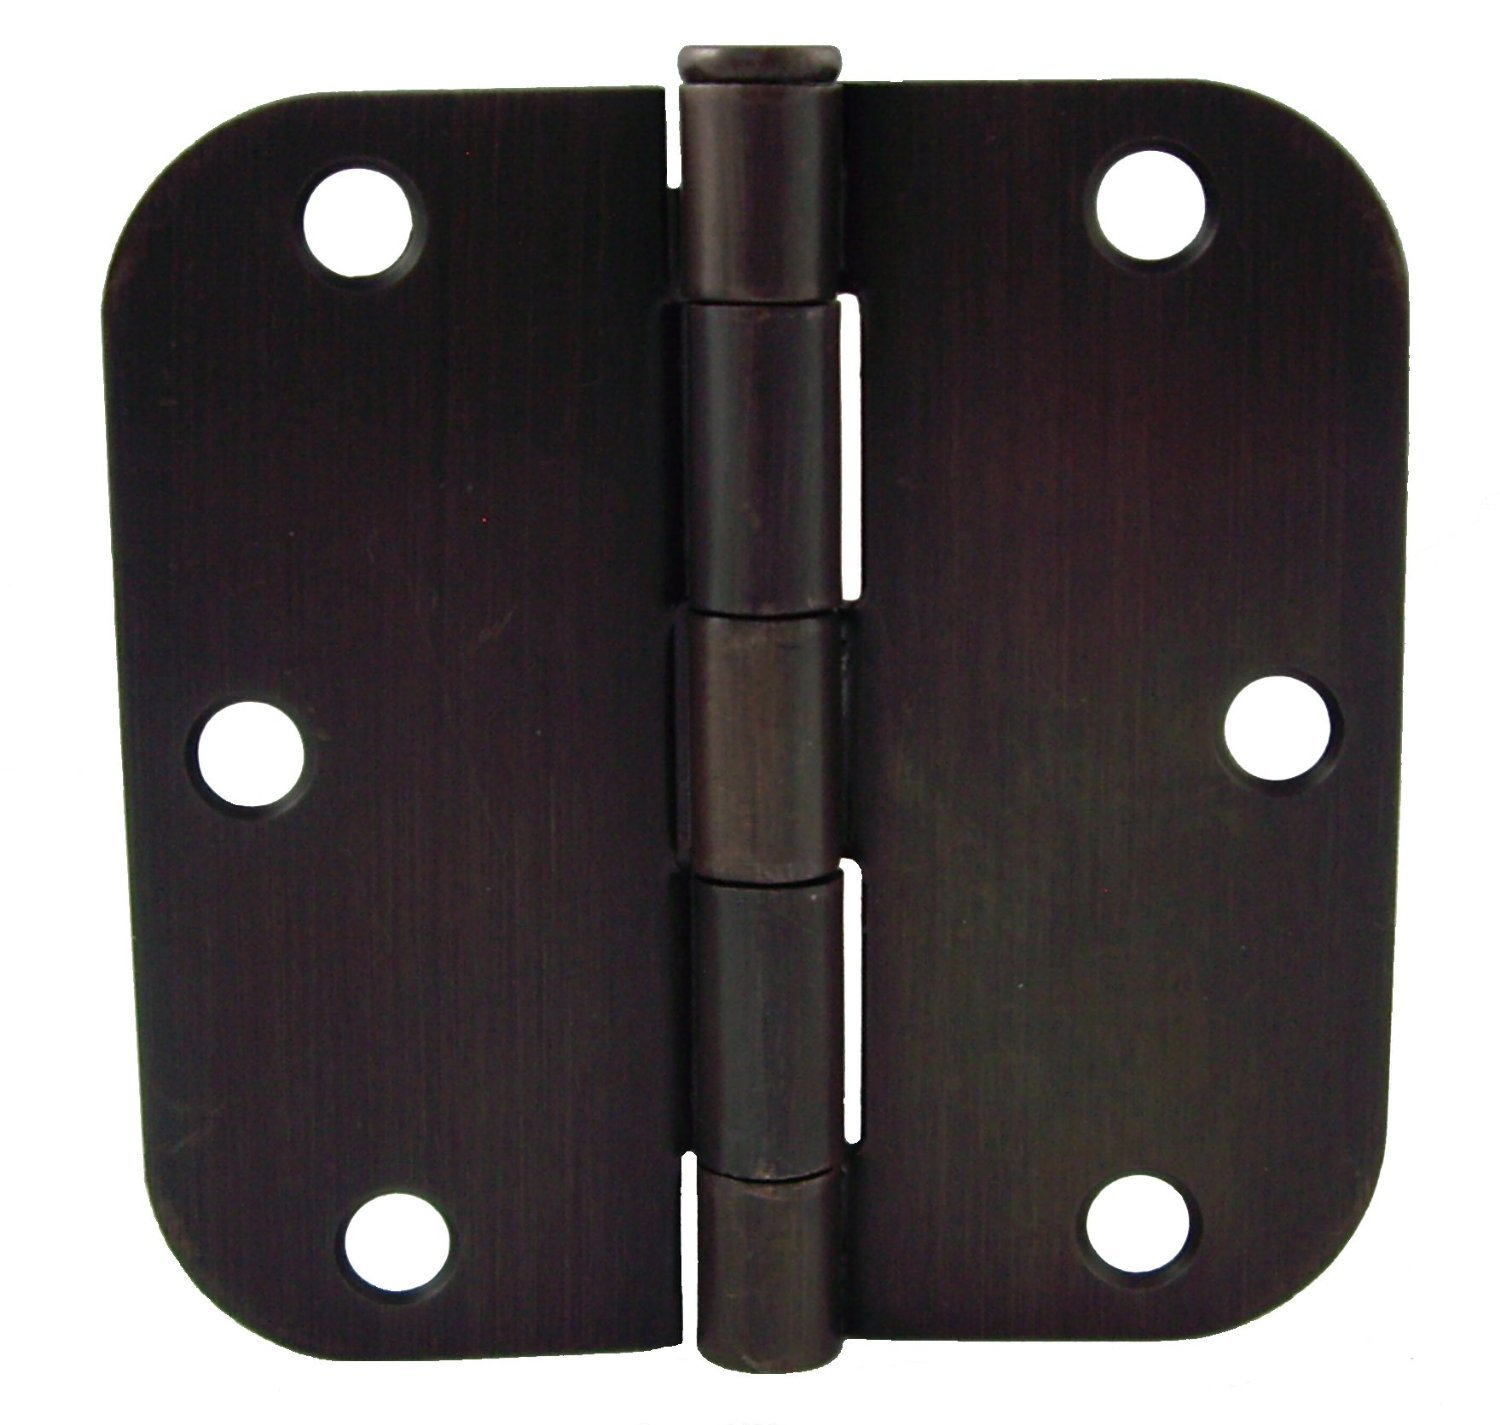 48 Oil Rubbed Bronze Interior Door Hinges 3.5 Inch X 3.5 Inch X 5/8 Inch  Rounded Corner     Amazon.com